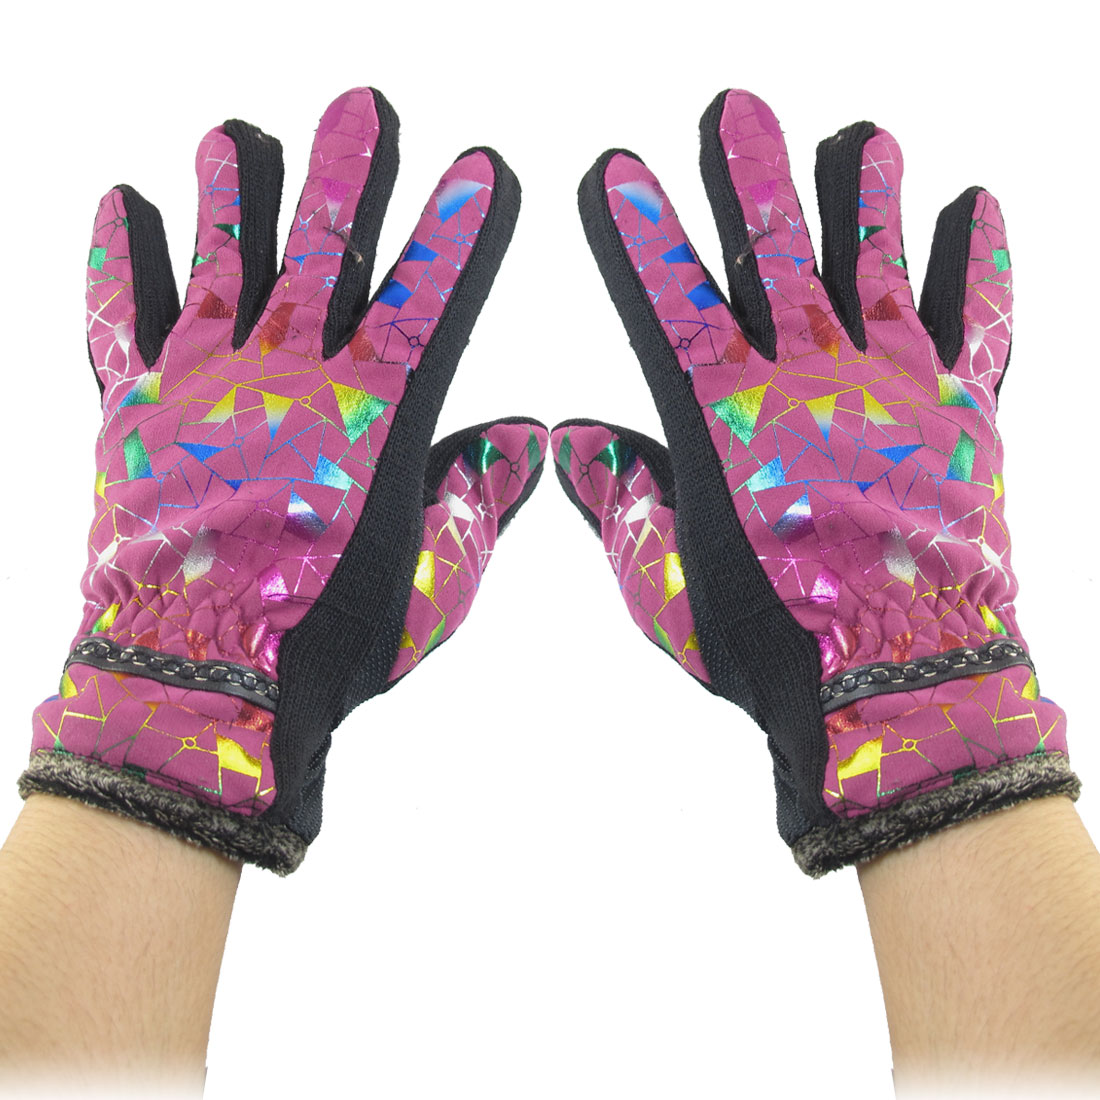 Geometric Pattern Nonslip Palm Design Winter Gloves Fuchsia for Women